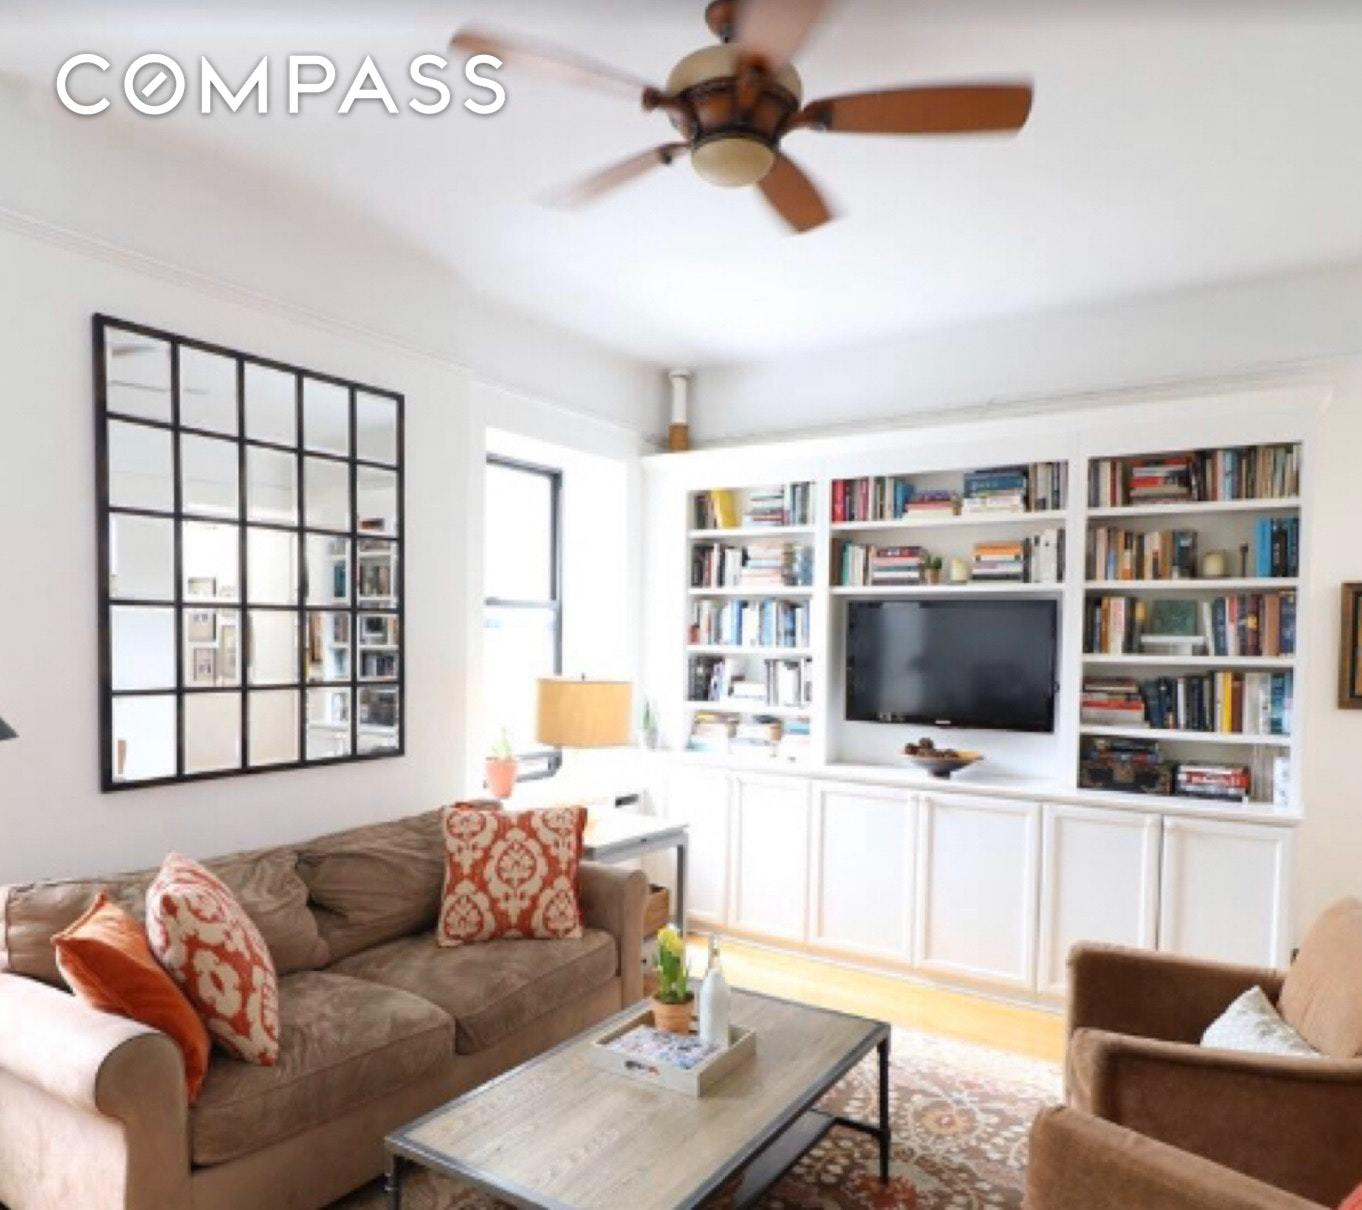 310 West 97th St undefined, NY 10025